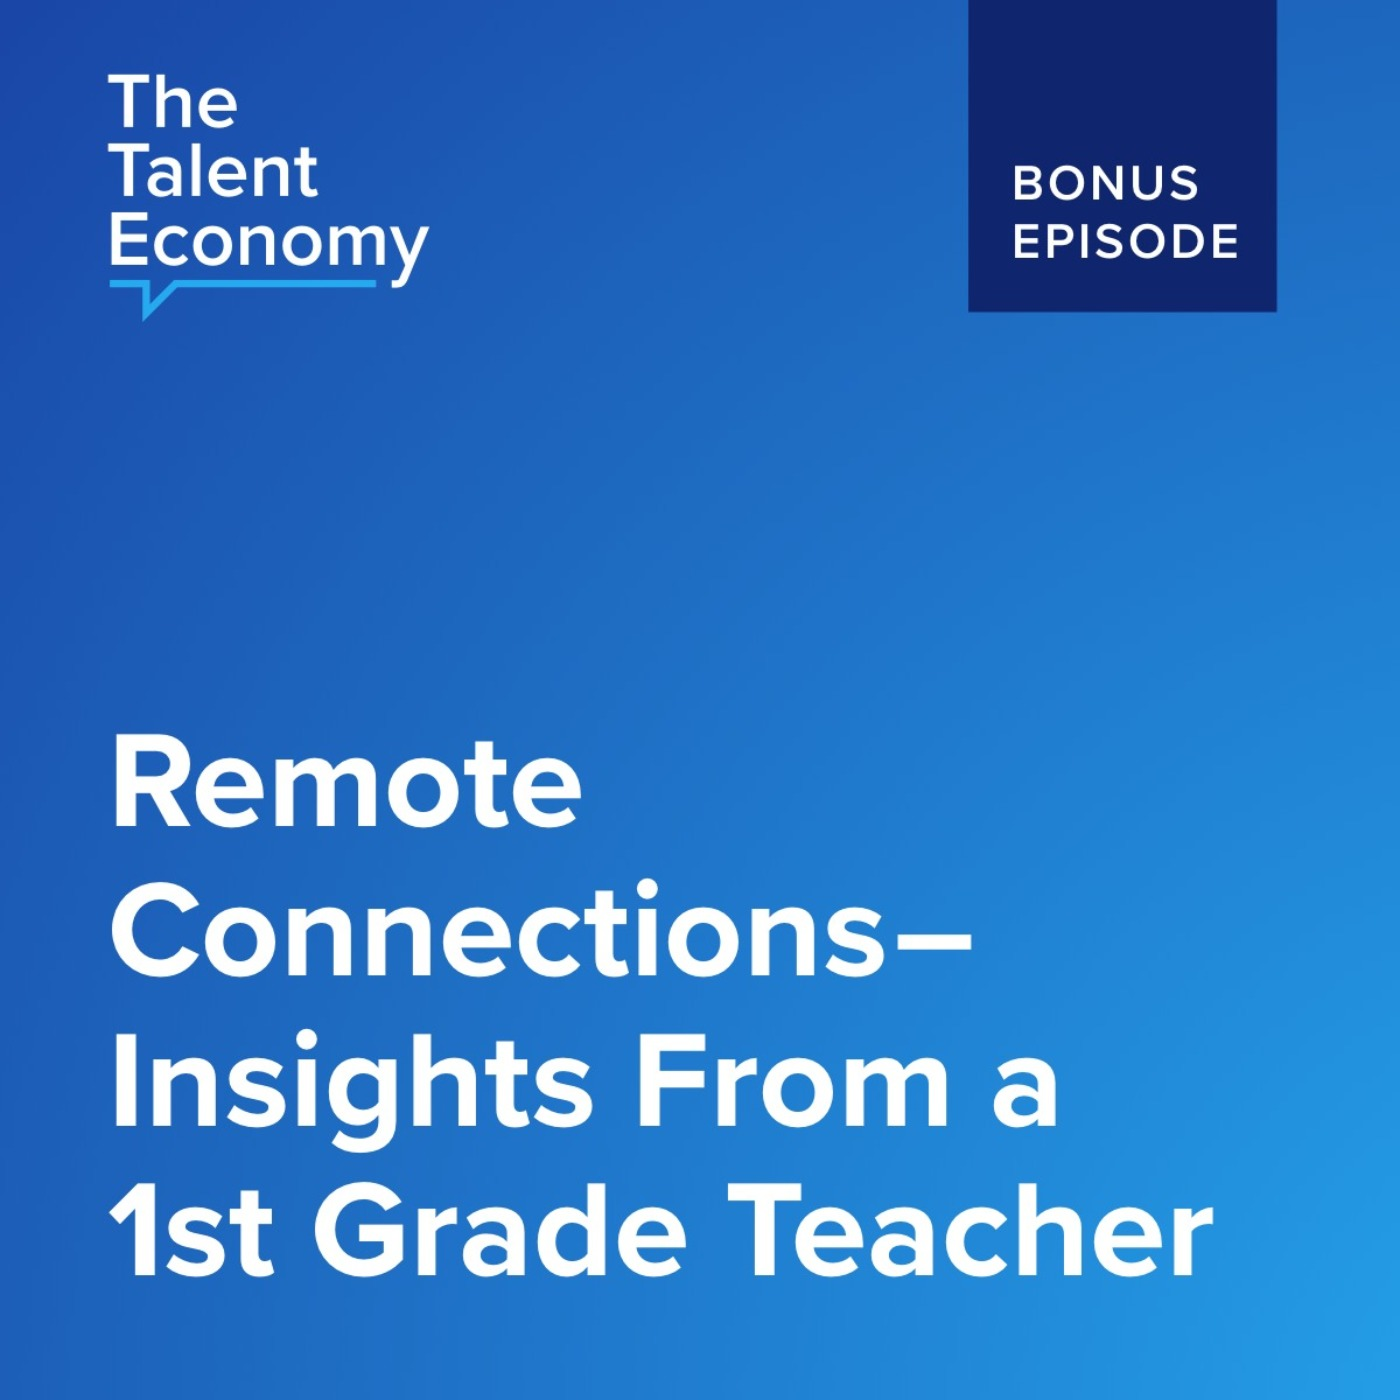 Remote Connections - Insights From a 1st Grade Teacher